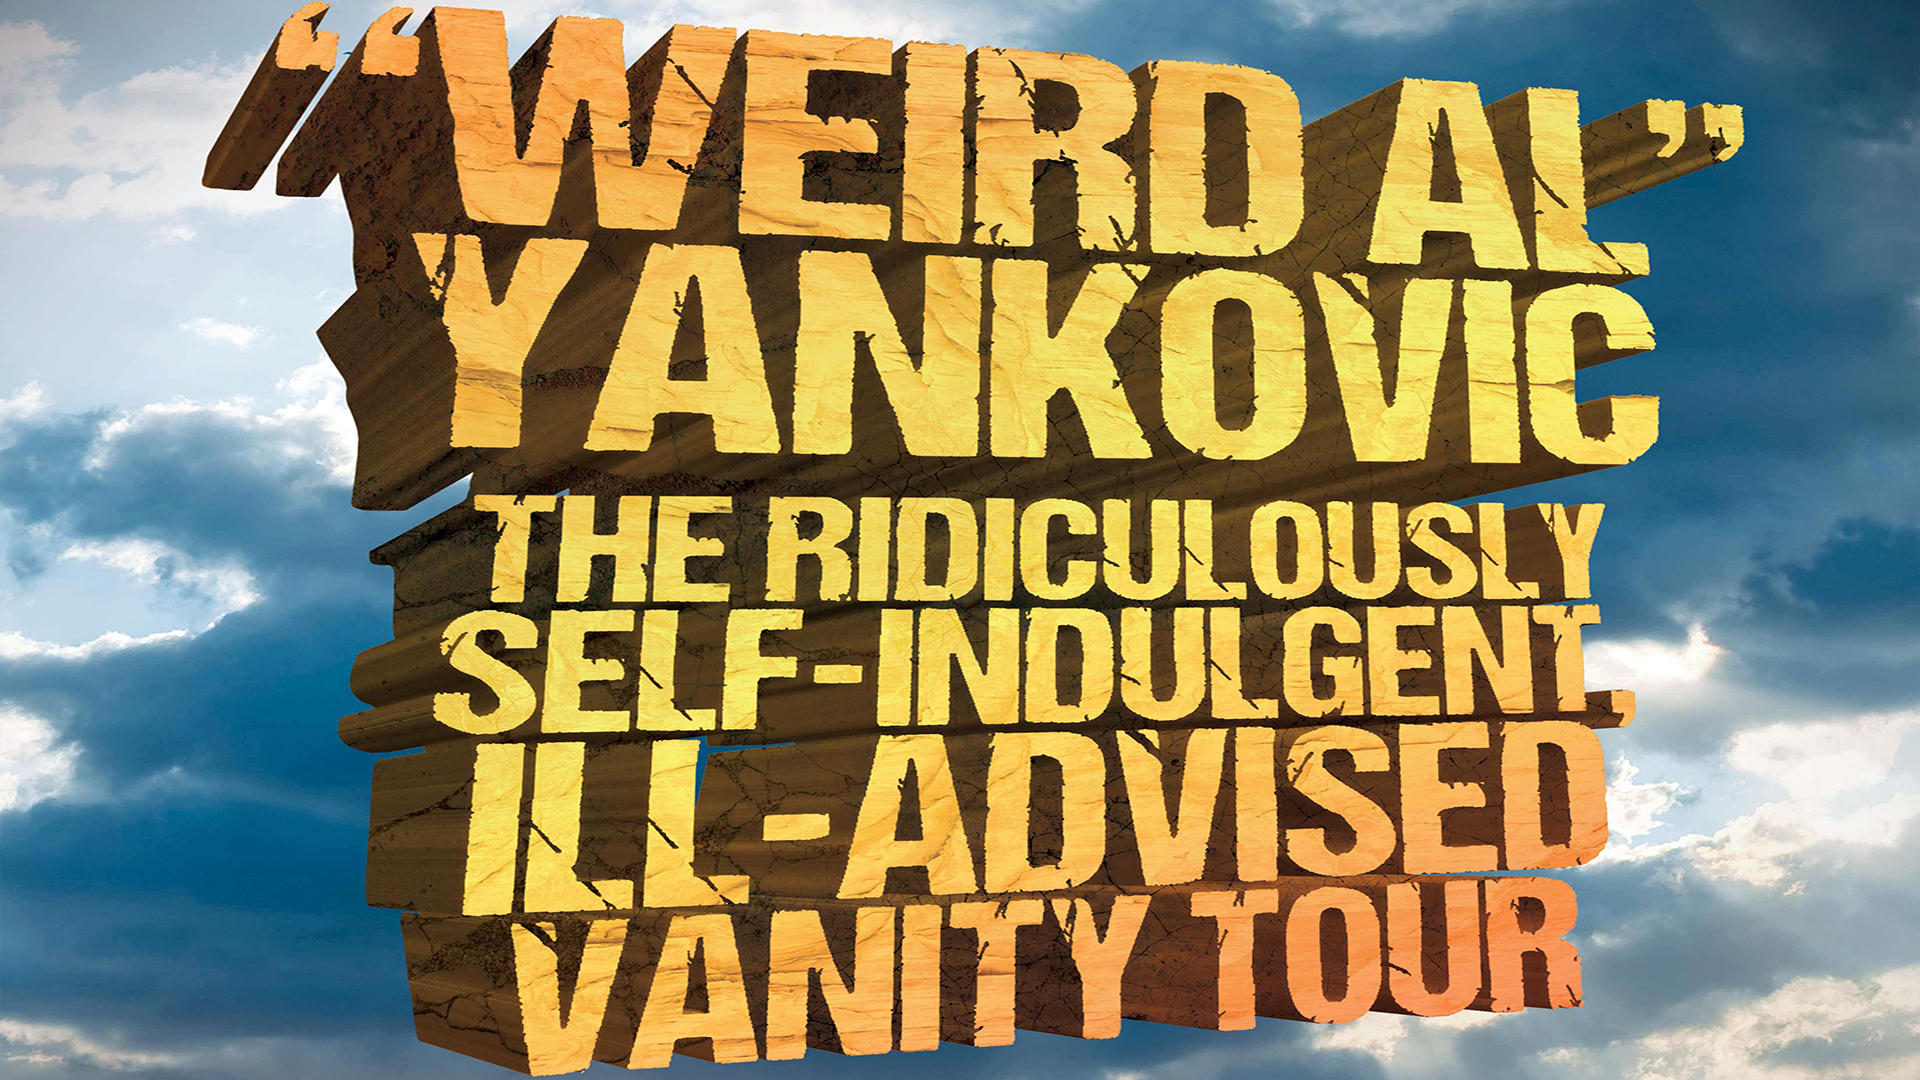 """Weird Al"" Yankovic: The Ill-Conceived Vanity Tour Compilation Edit"